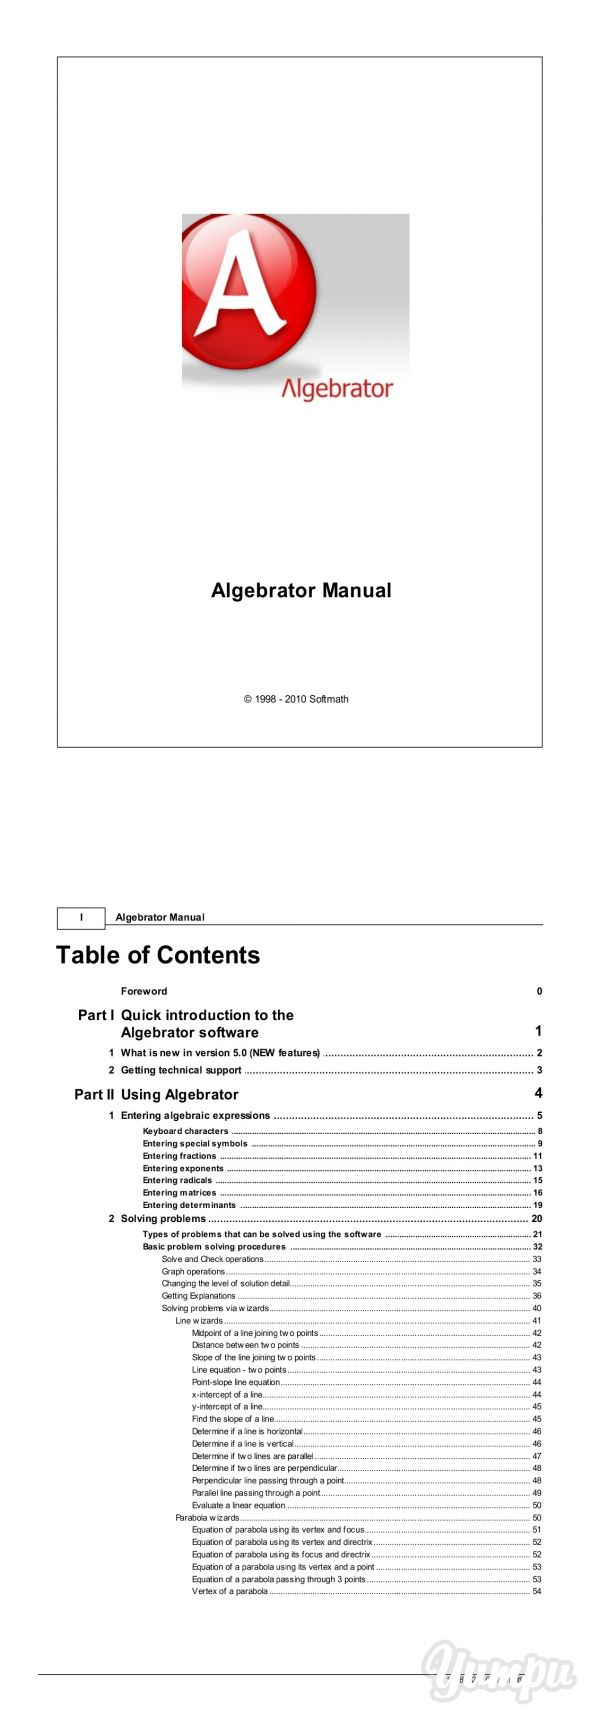 online physics problem solver easy ways to solve math problems  ideas about algebra solver expression solver doyourmath com algebrator manual for your algebra problem solver magazine physics homework online